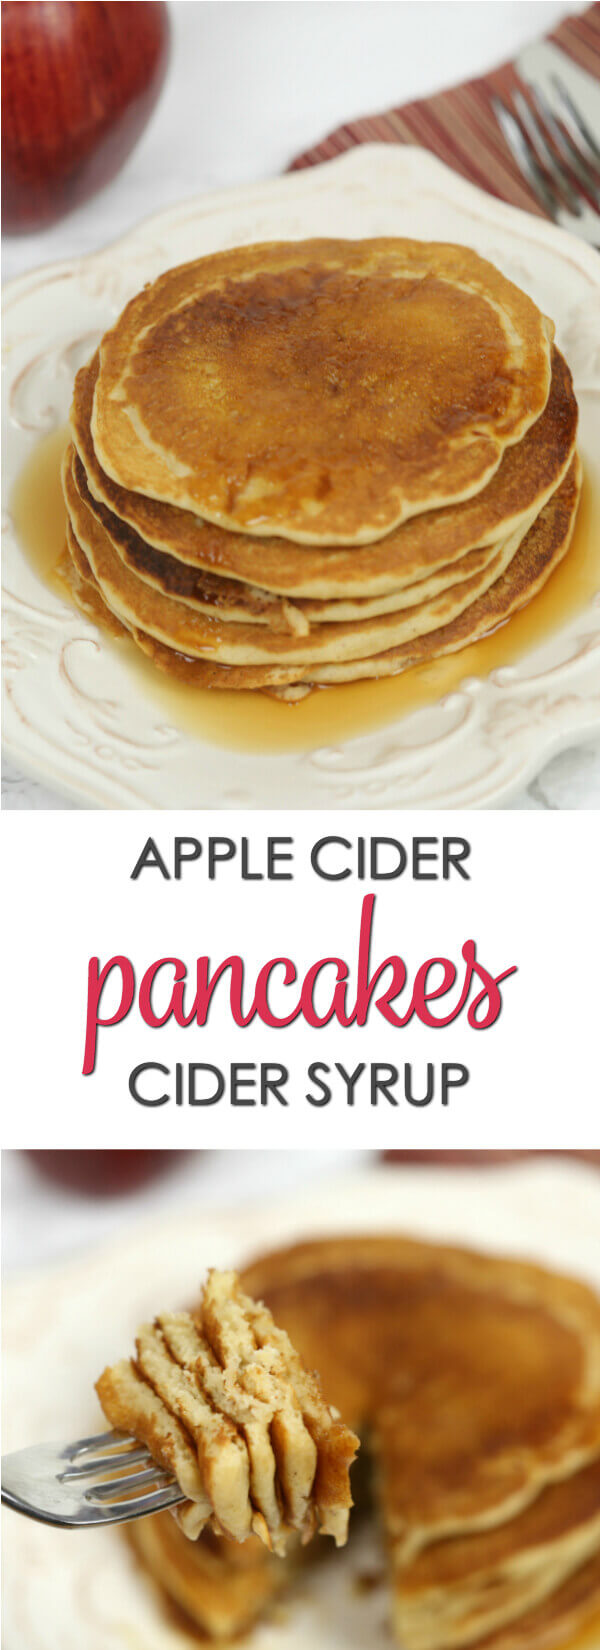 Apple Cider Pancakes - these cider infused pancakes are drizzled with a luscious cider syrup